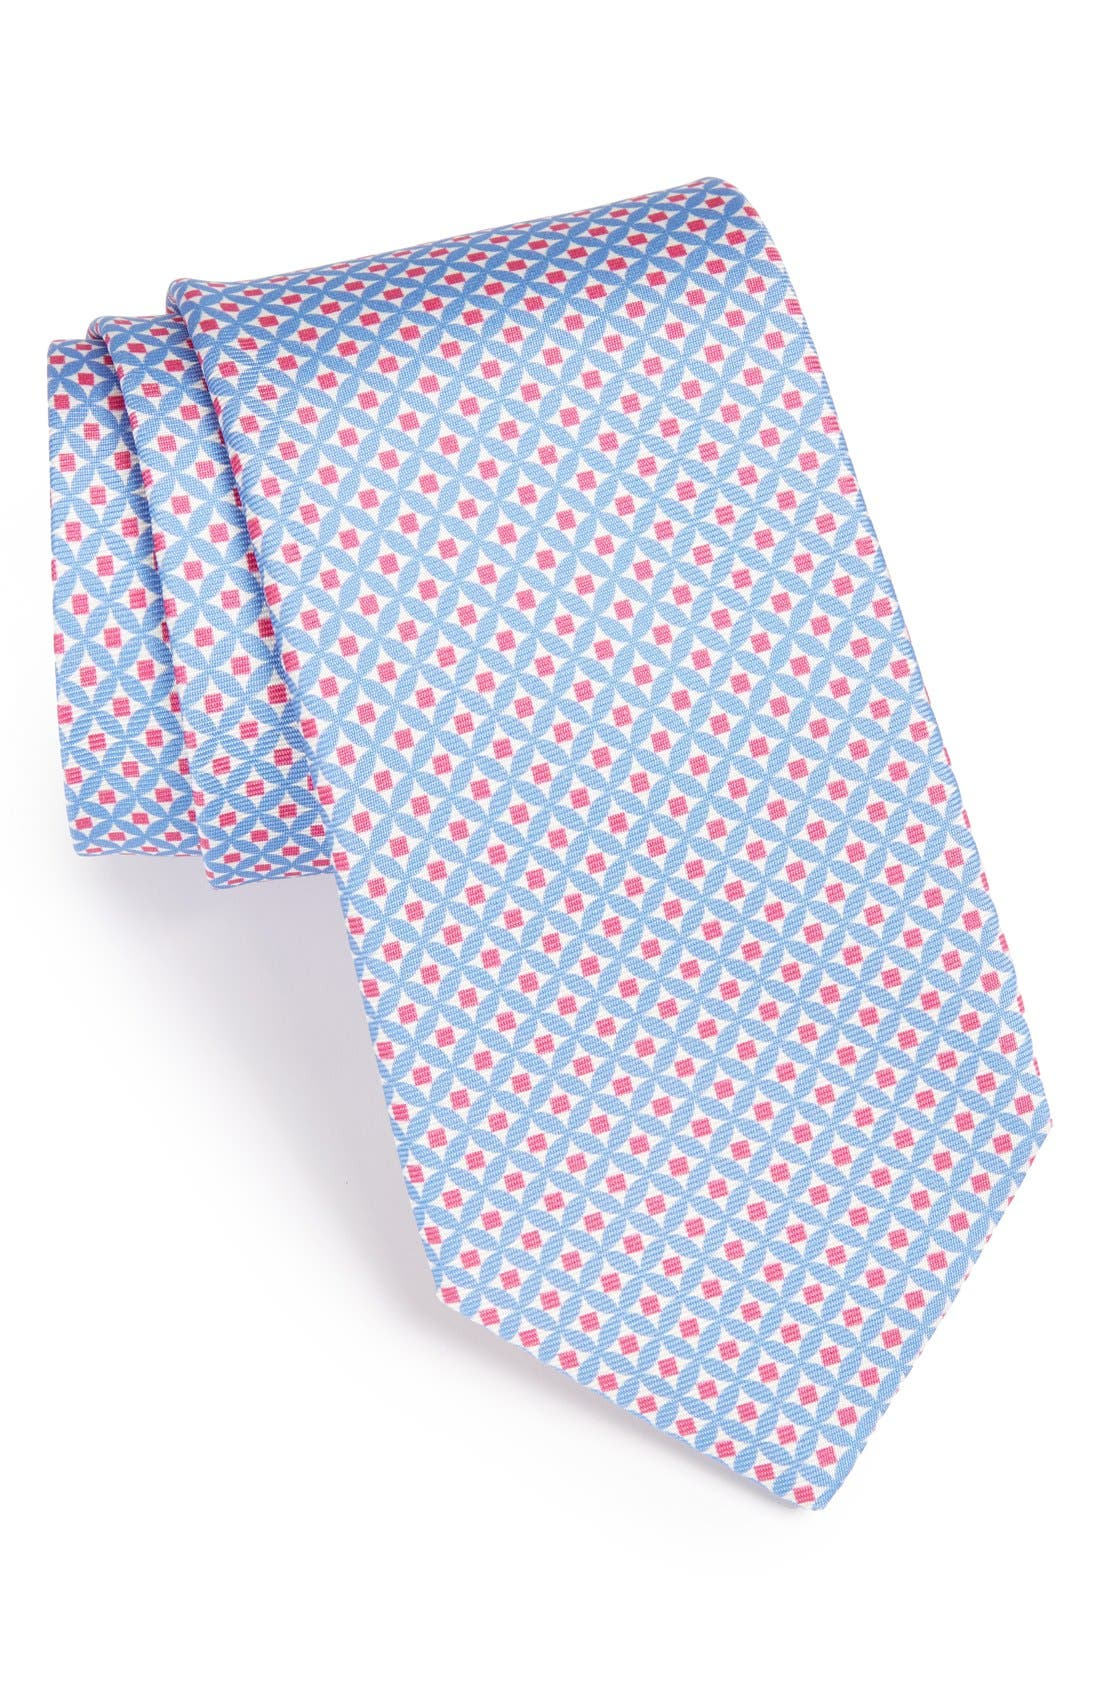 Alternate Image 1 Selected - Peter Millar Geometric Woven Silk Tie